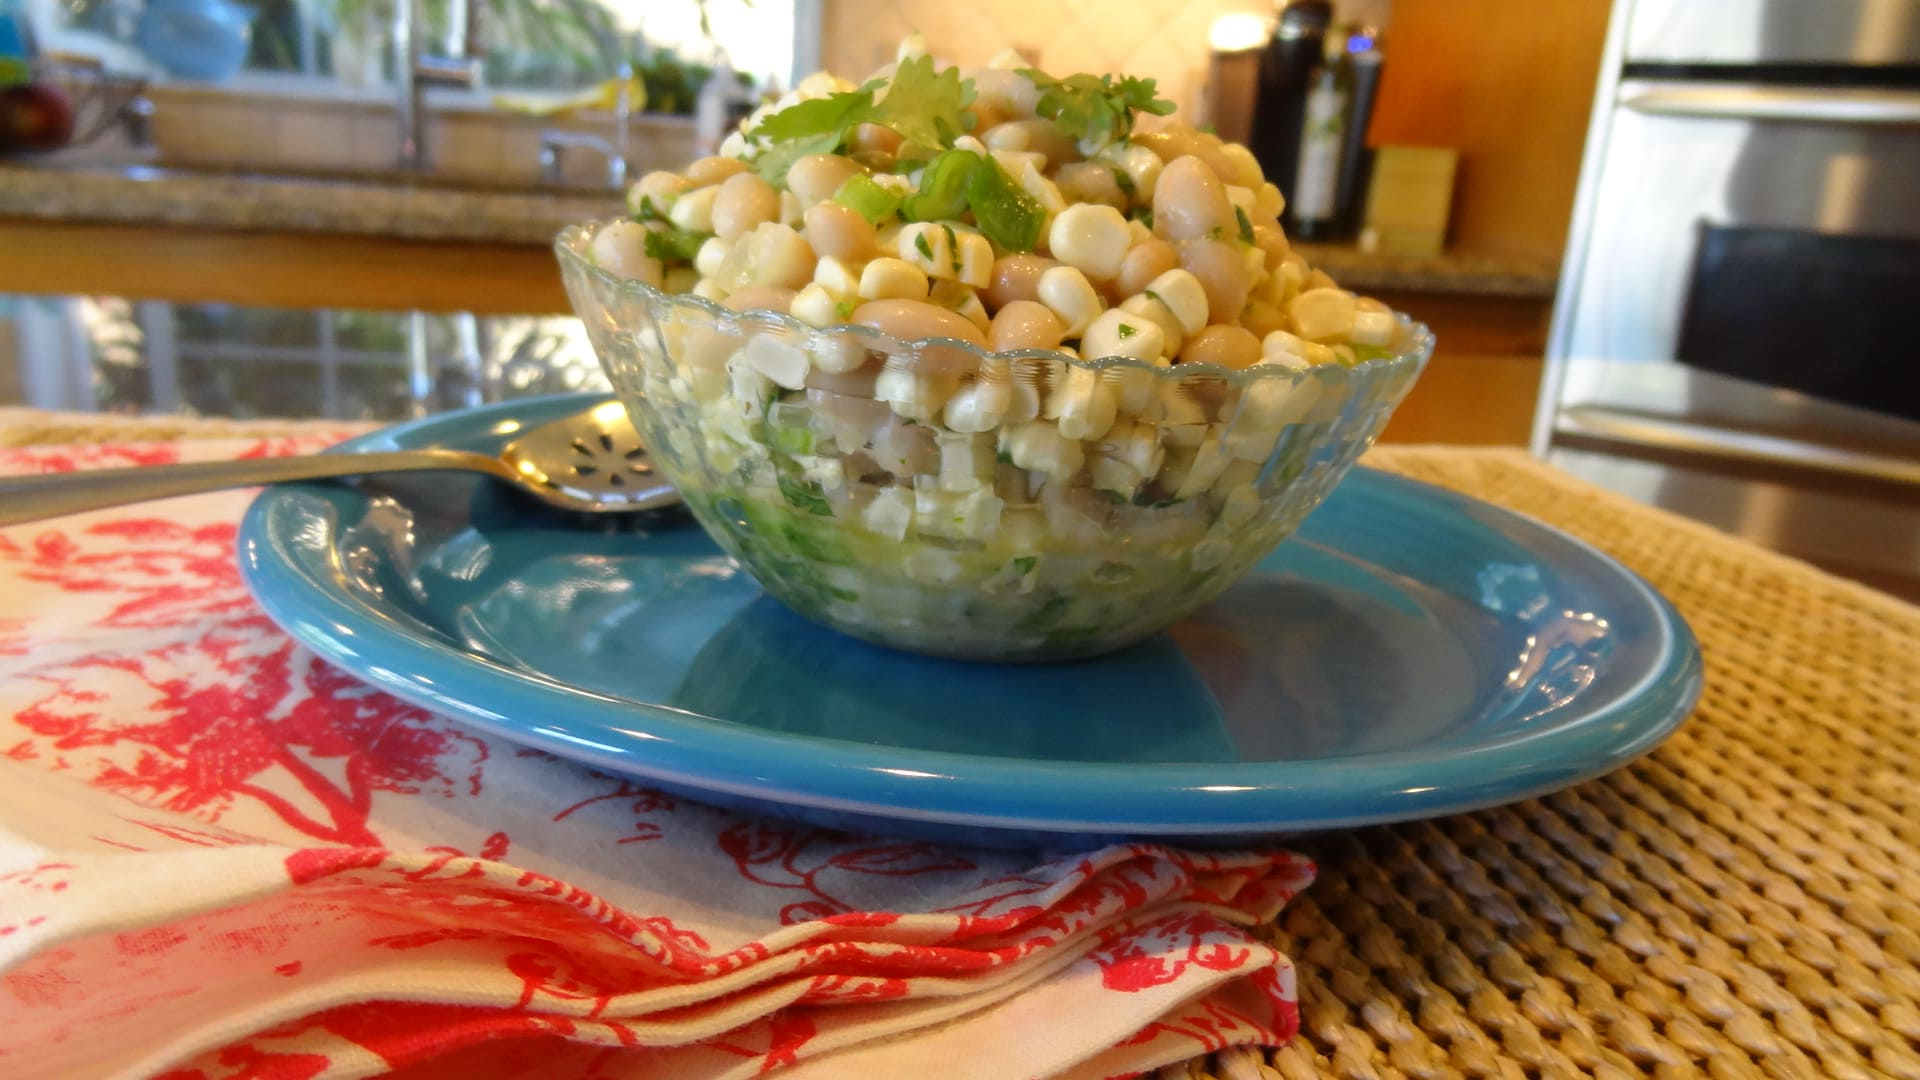 Recipe: Corn and White Bean Salad : The South Meets California